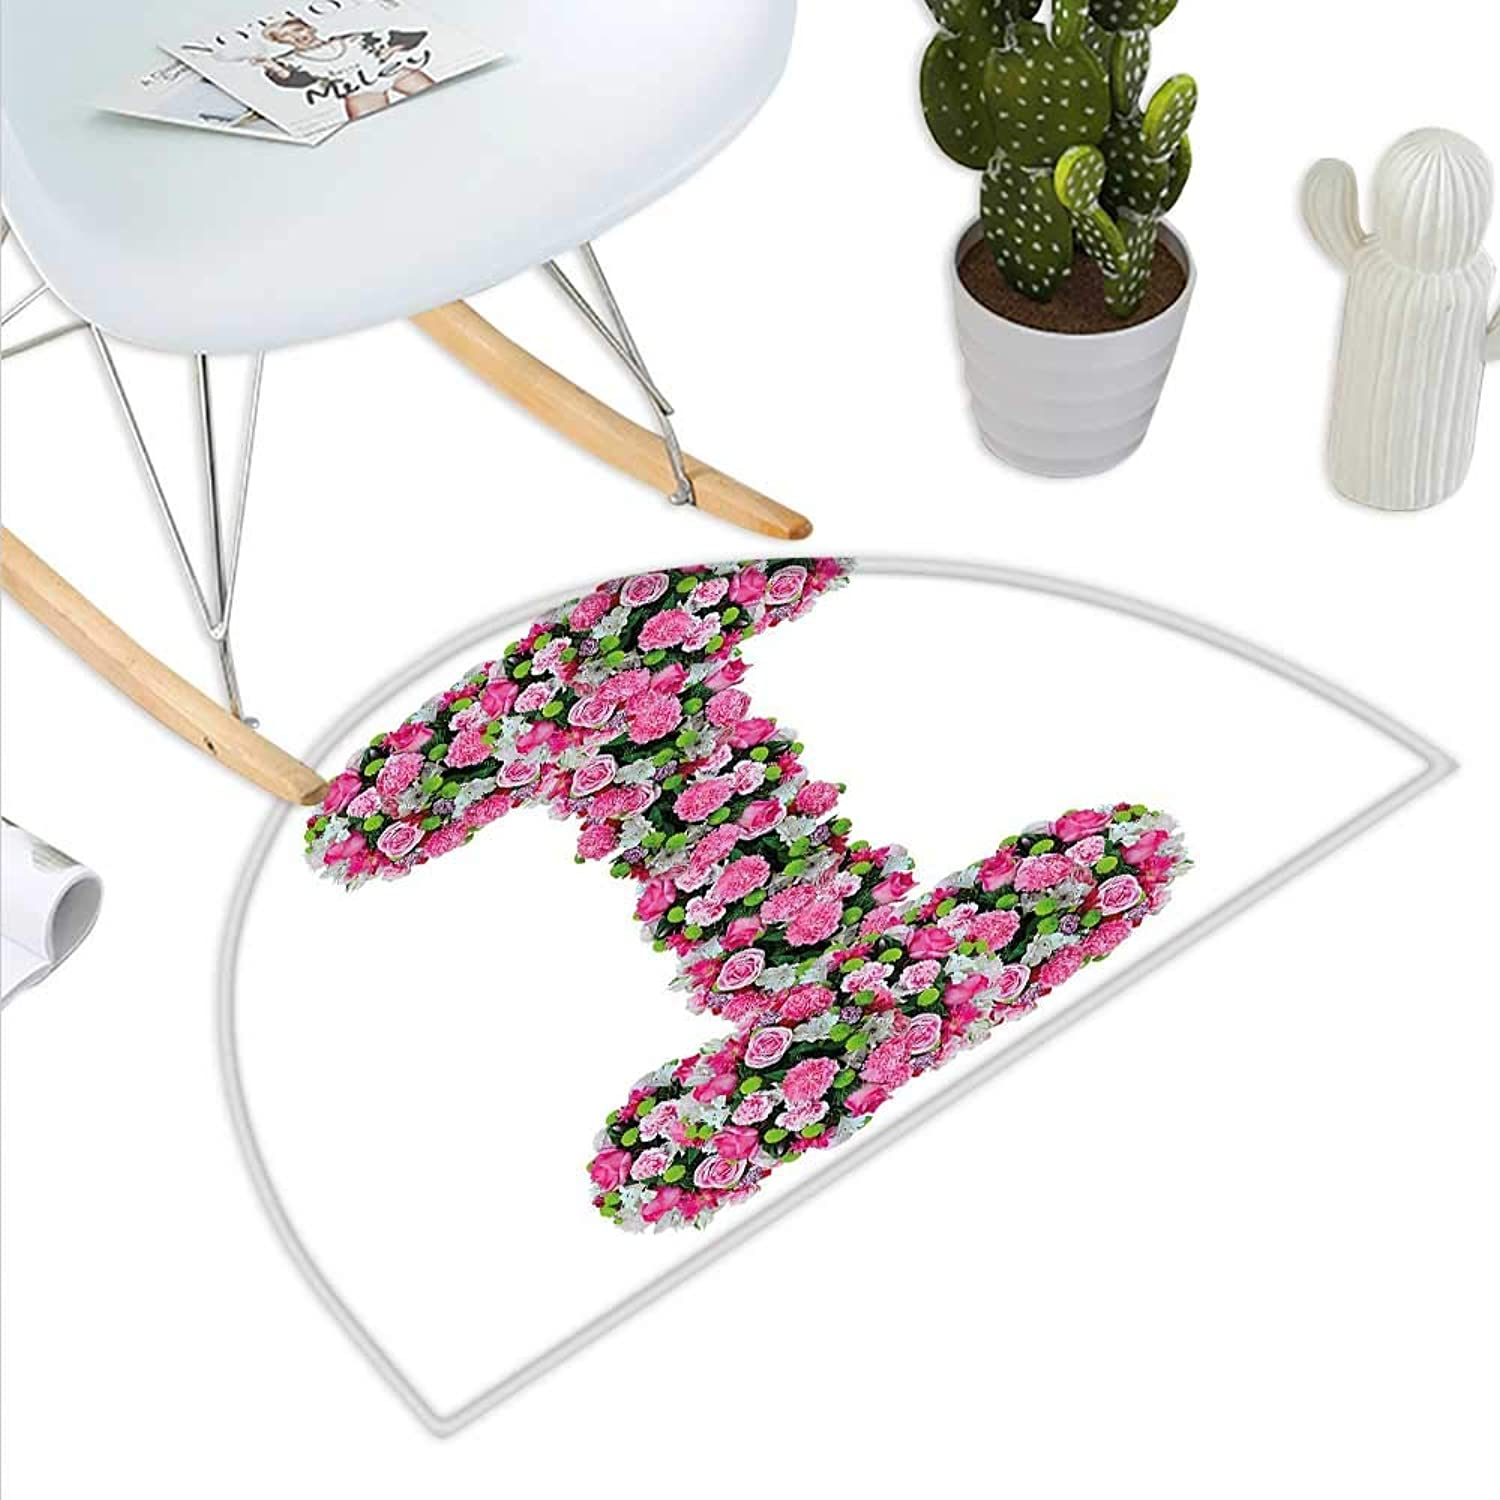 Letter I Semicircle Doormat Initial Letter I with colorful Blooming Bouquet Daisies Realistic Looking Flowers Halfmoon doormats H 27.5  xD 41.3  Pink Green